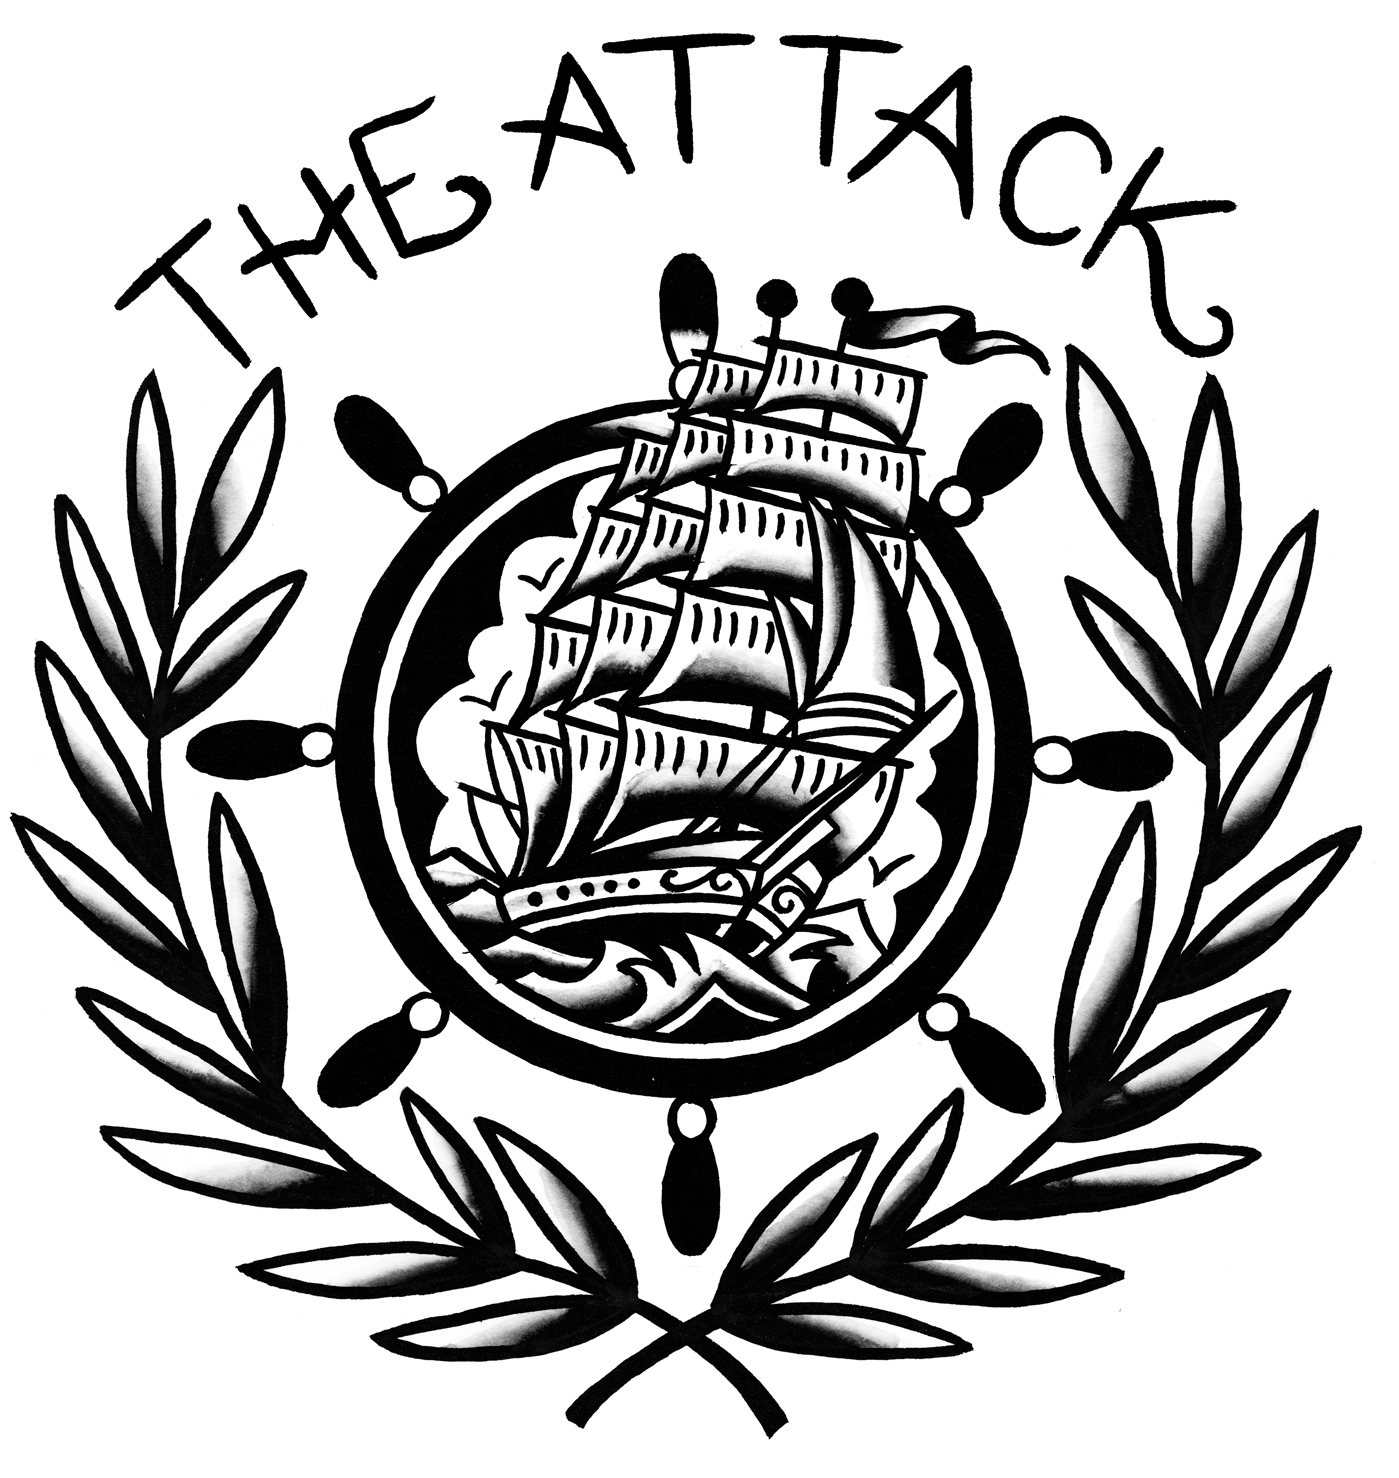 The Attack cut anchor_Ship_black